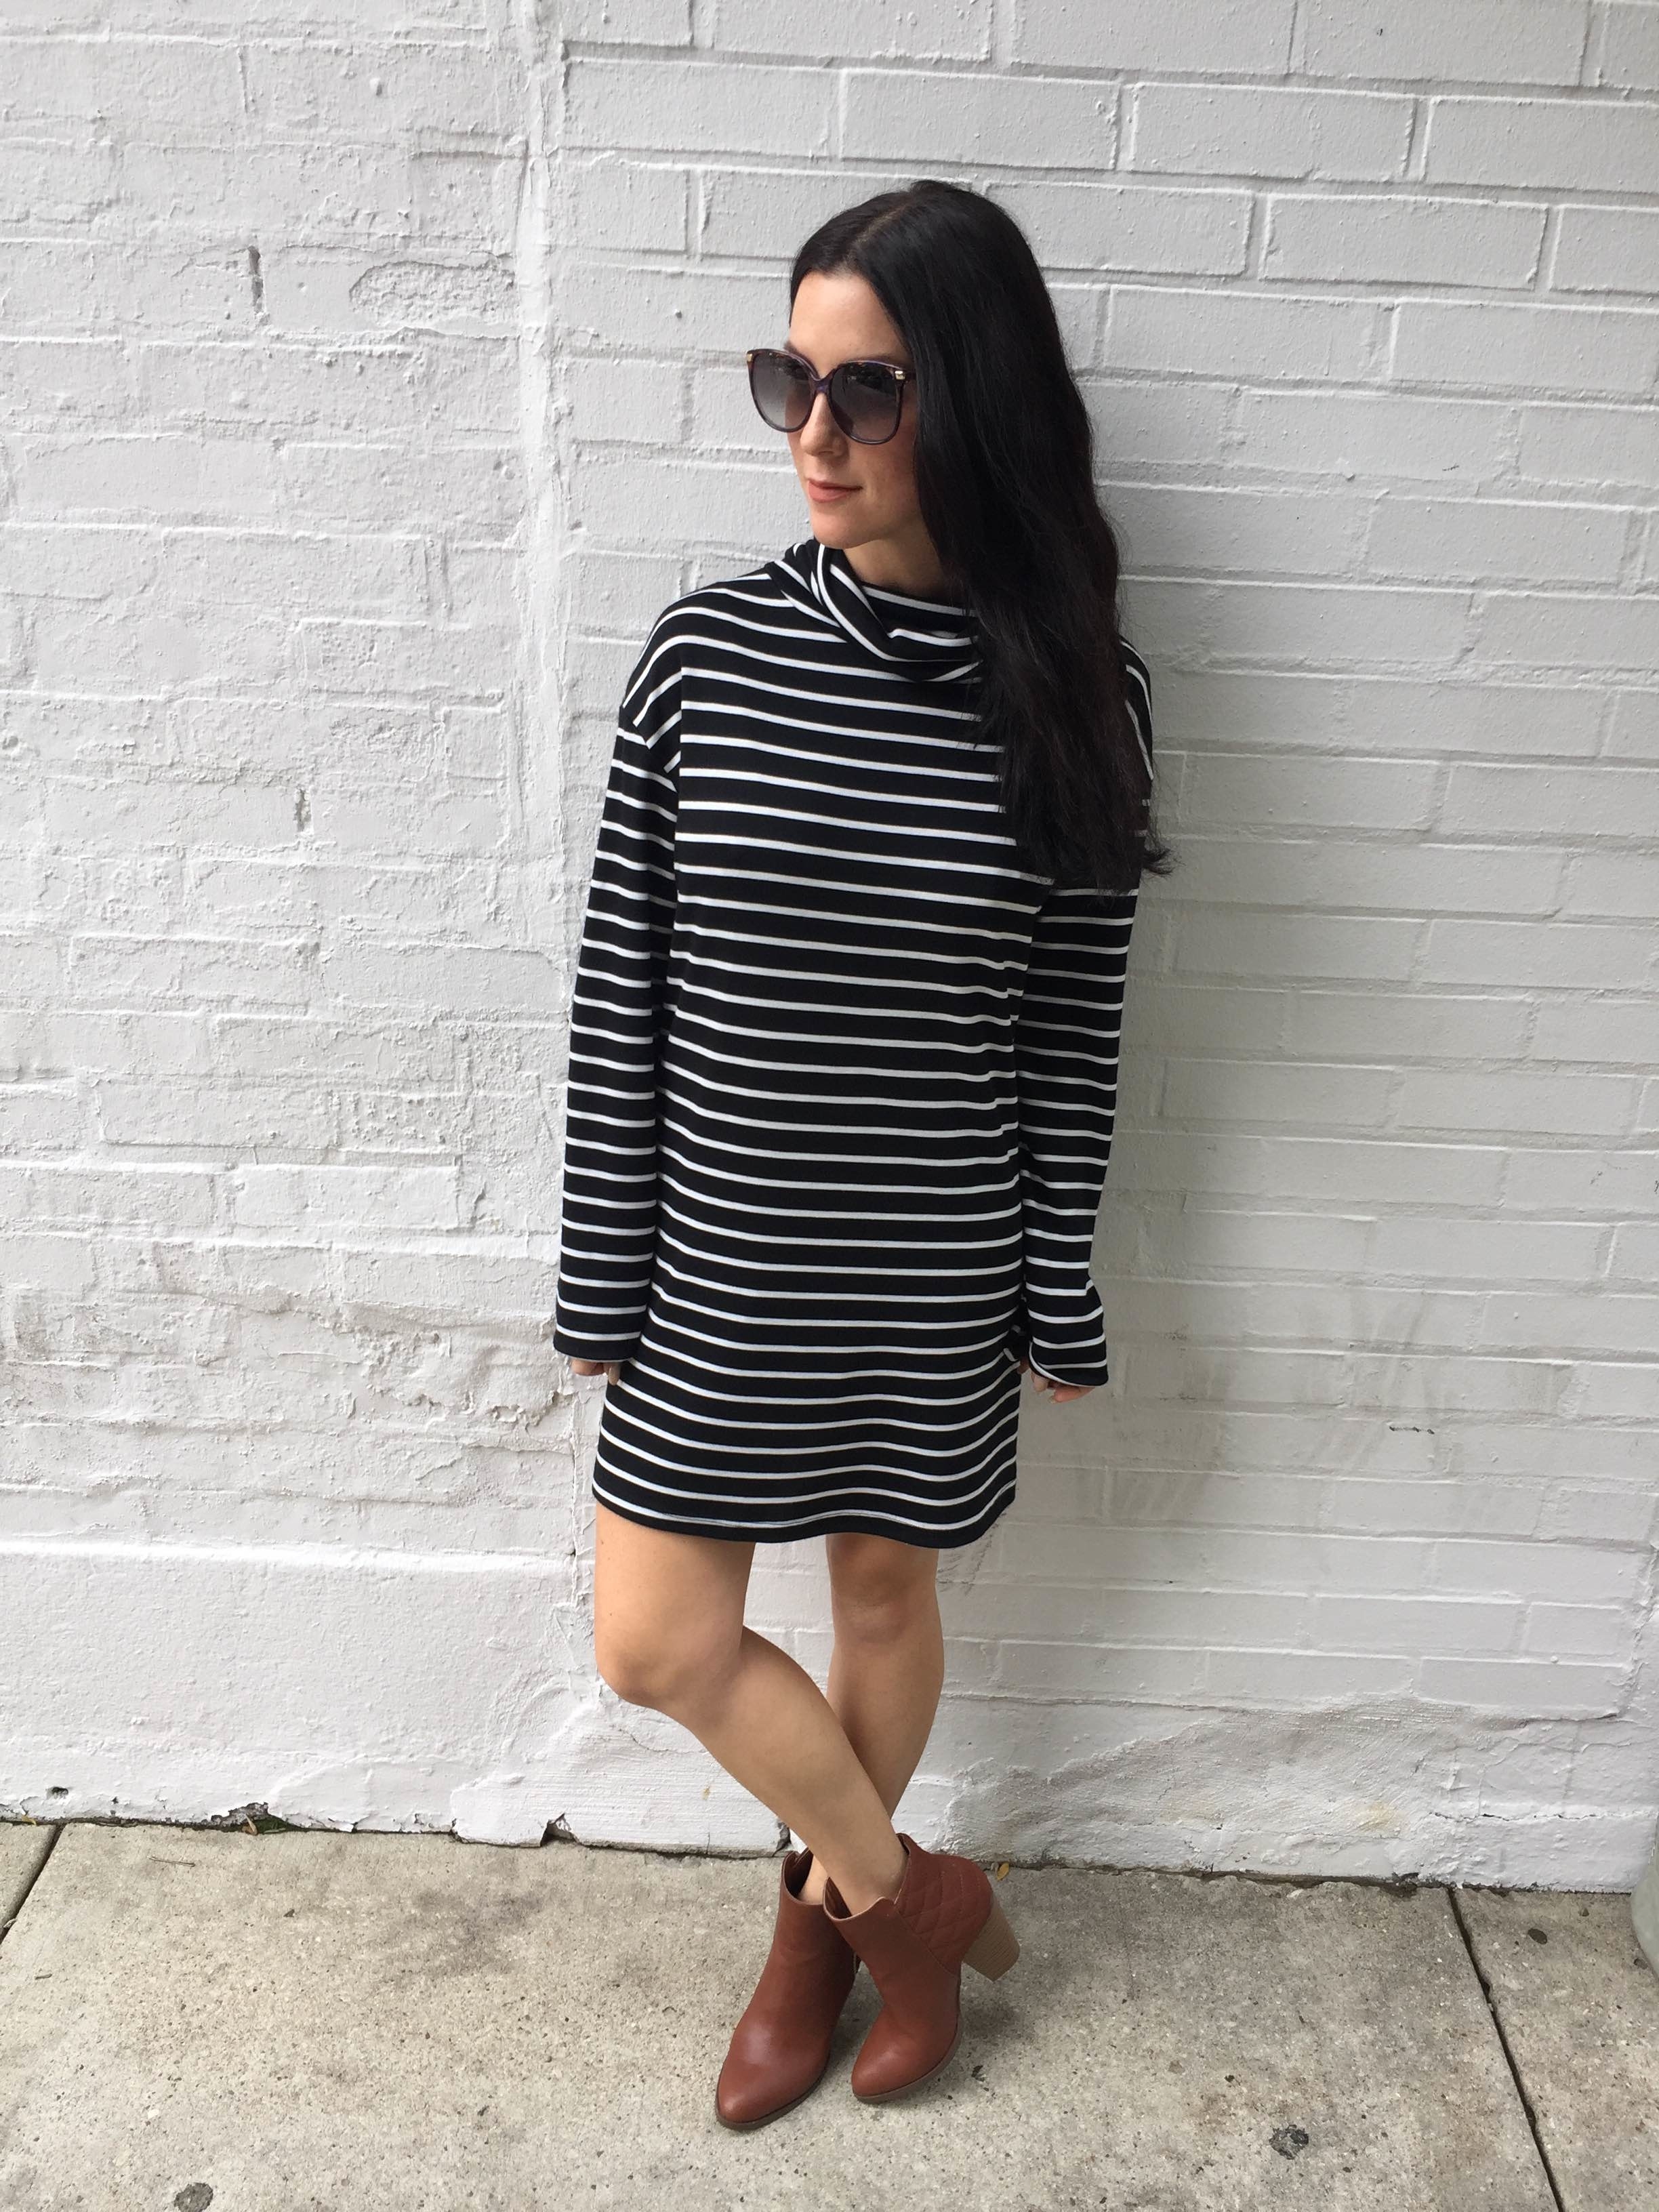 Dress//  Free People           Sunglasses//  Toms       Booties//  Just Fab